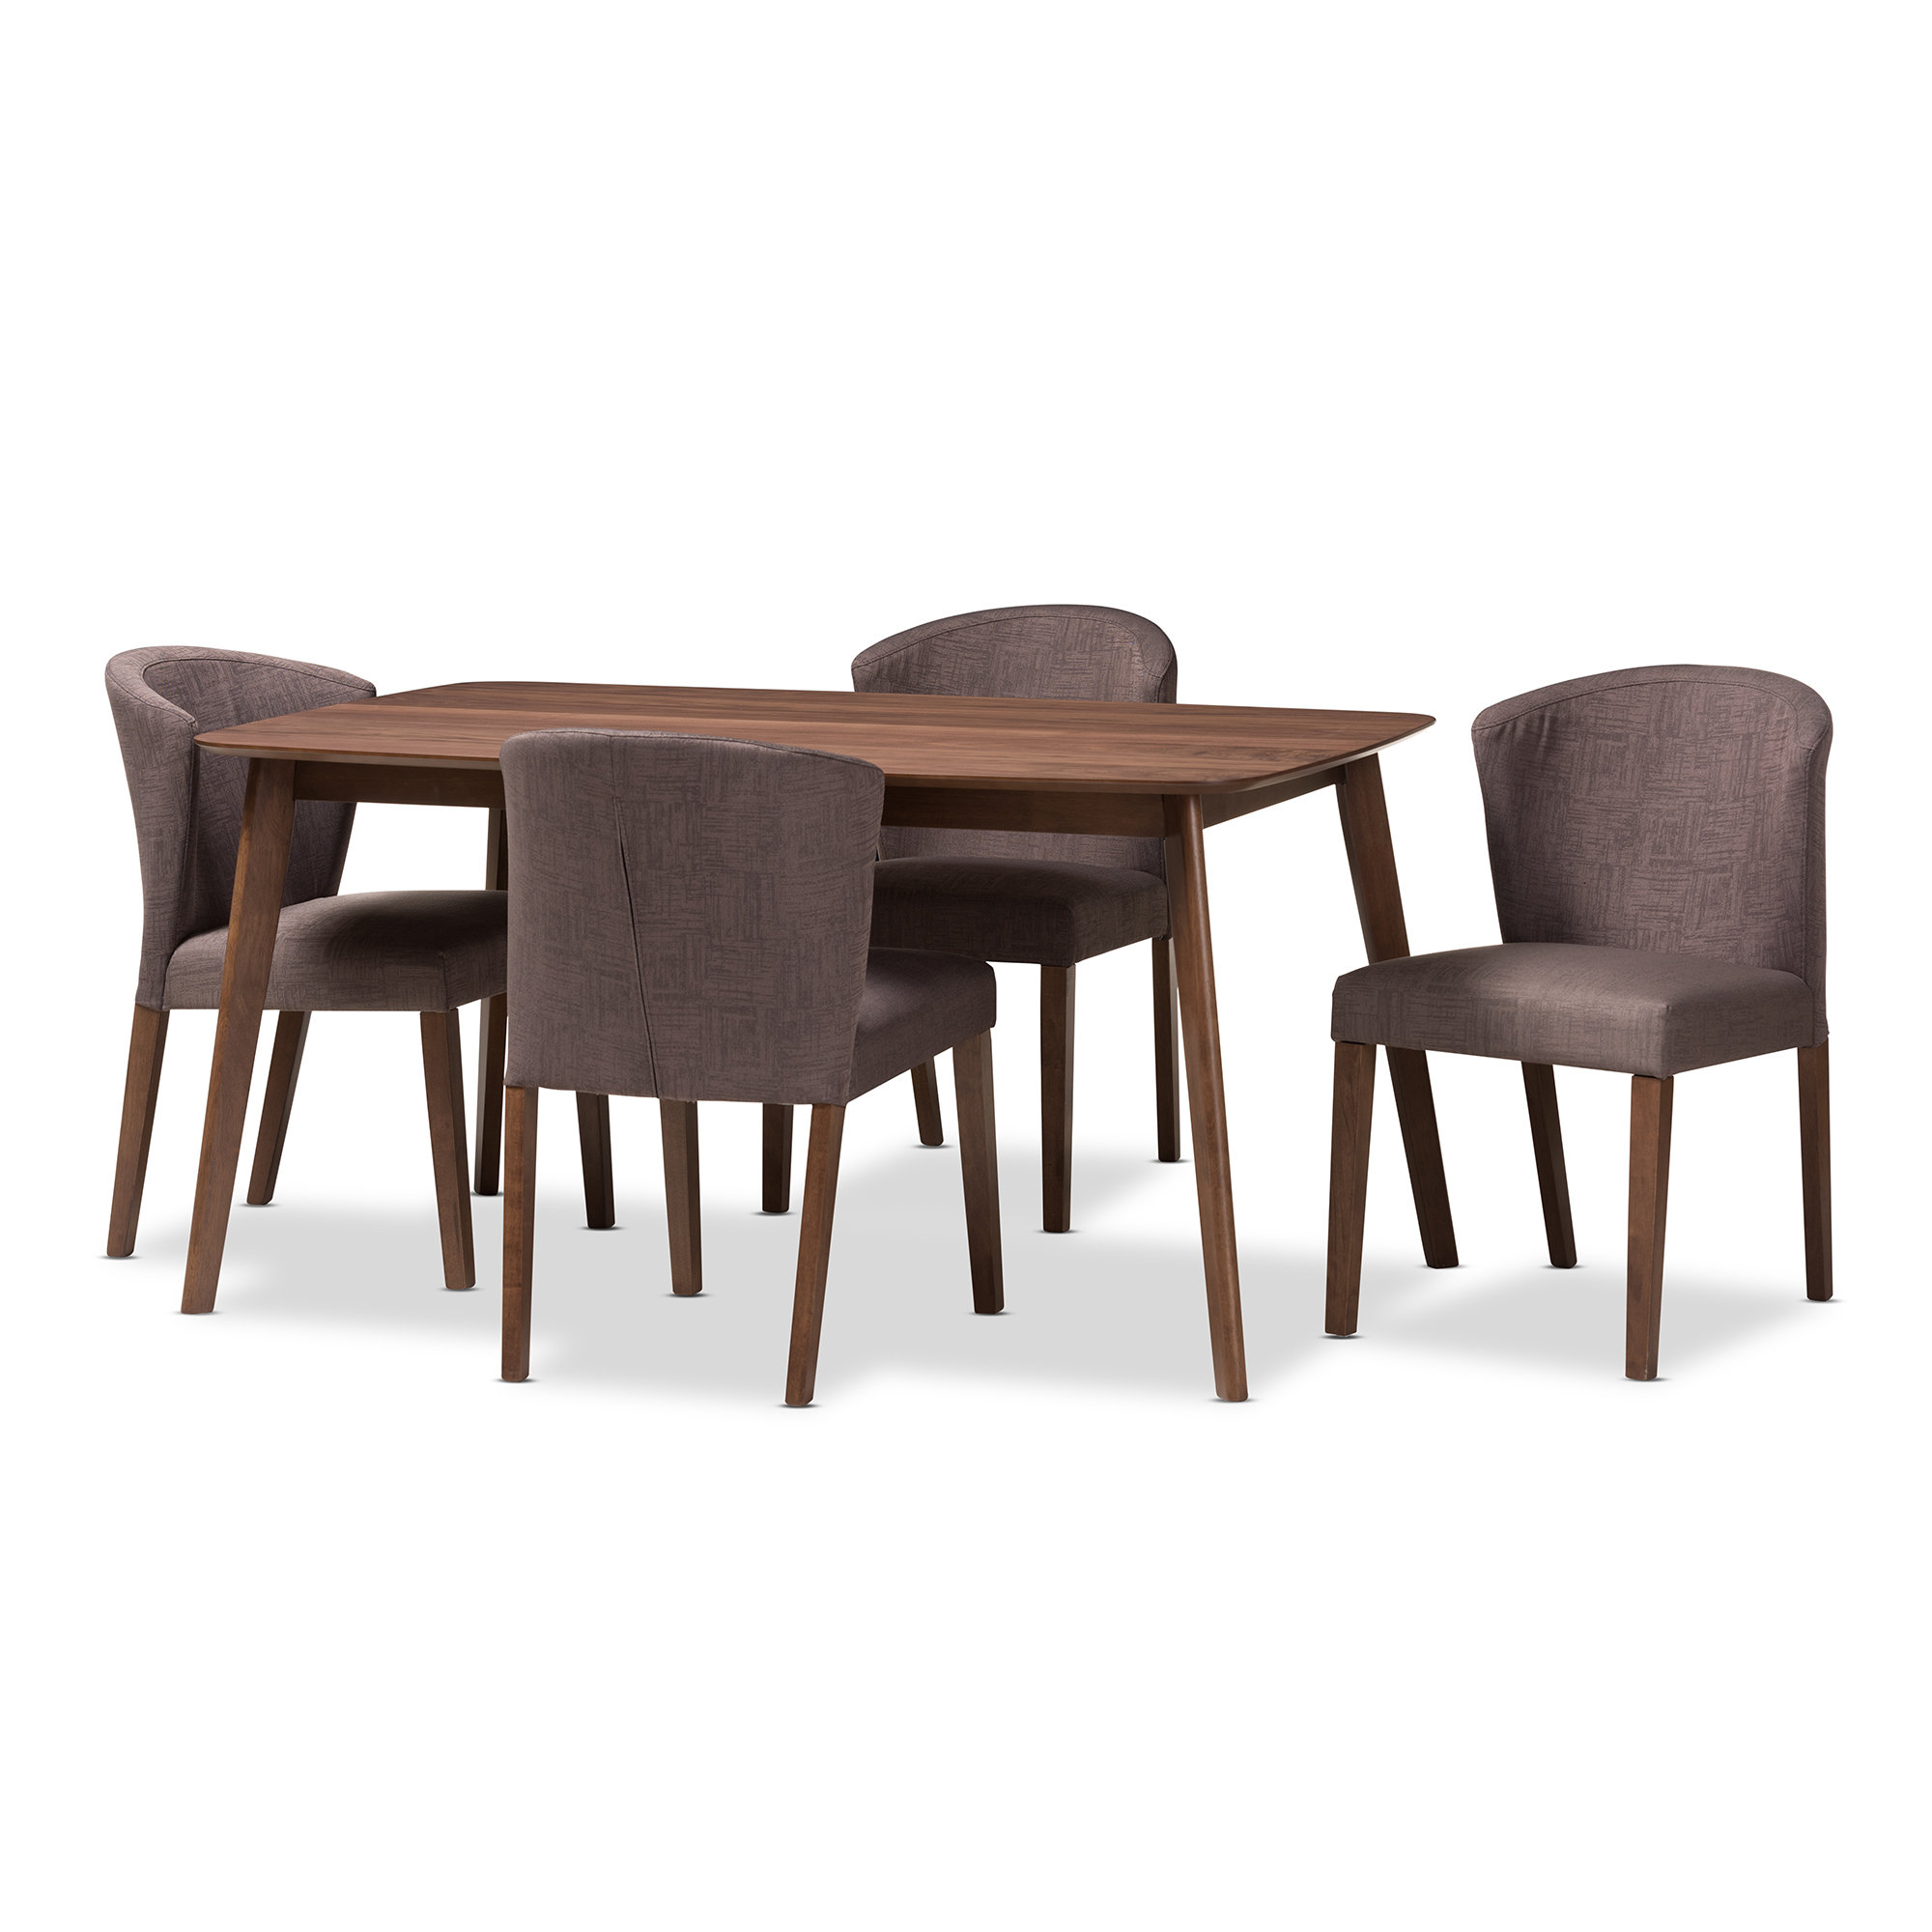 George Oliver Dingler Mid Century Wood 5 Piece Dining Set With Regard To Current Tejeda 5 Piece Dining Sets (View 14 of 20)